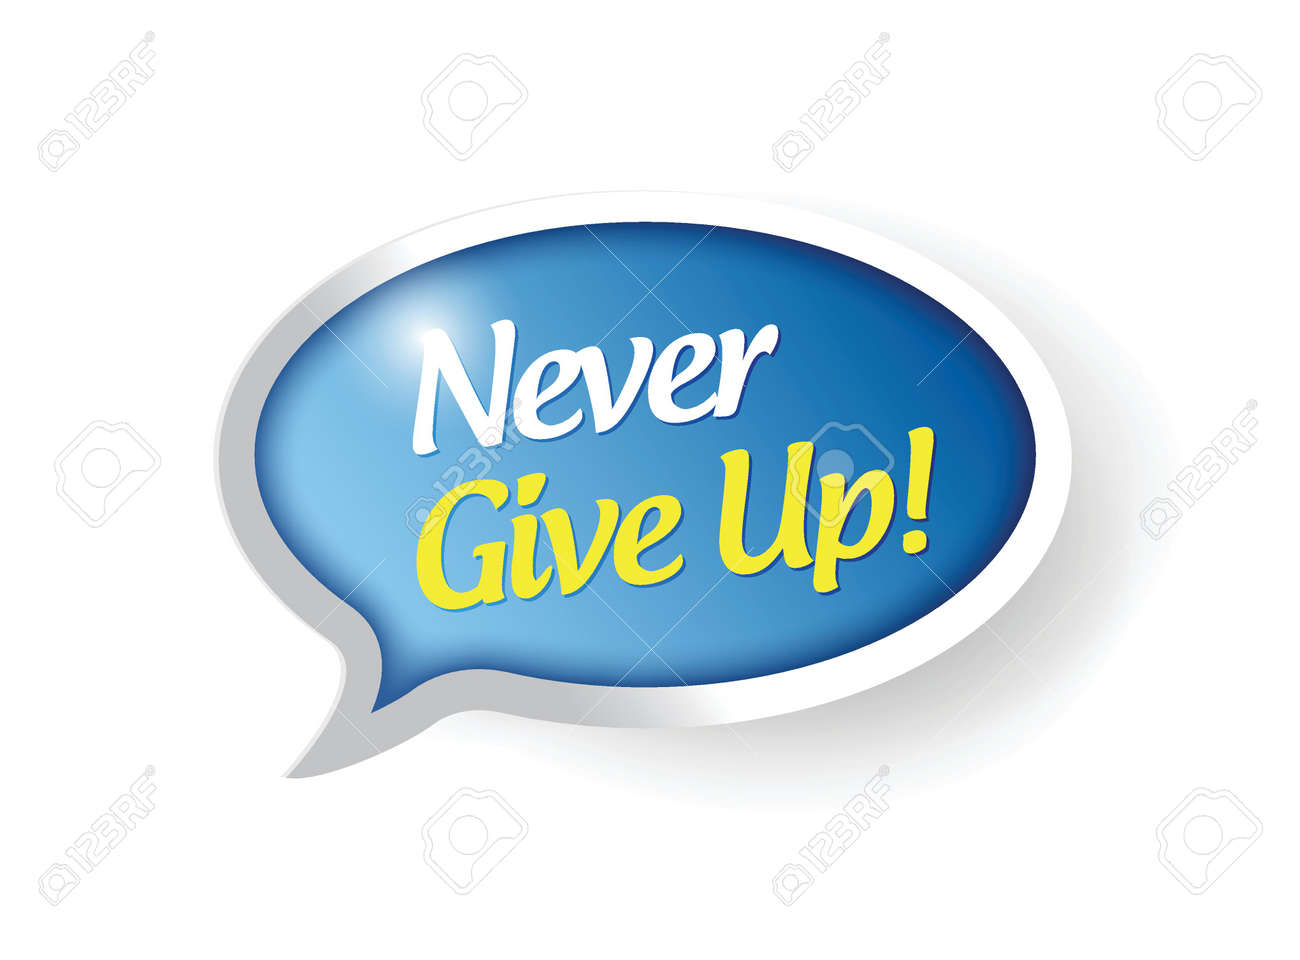 never give up speech bubble message illustration design over a white background Stock Vector - 25701006